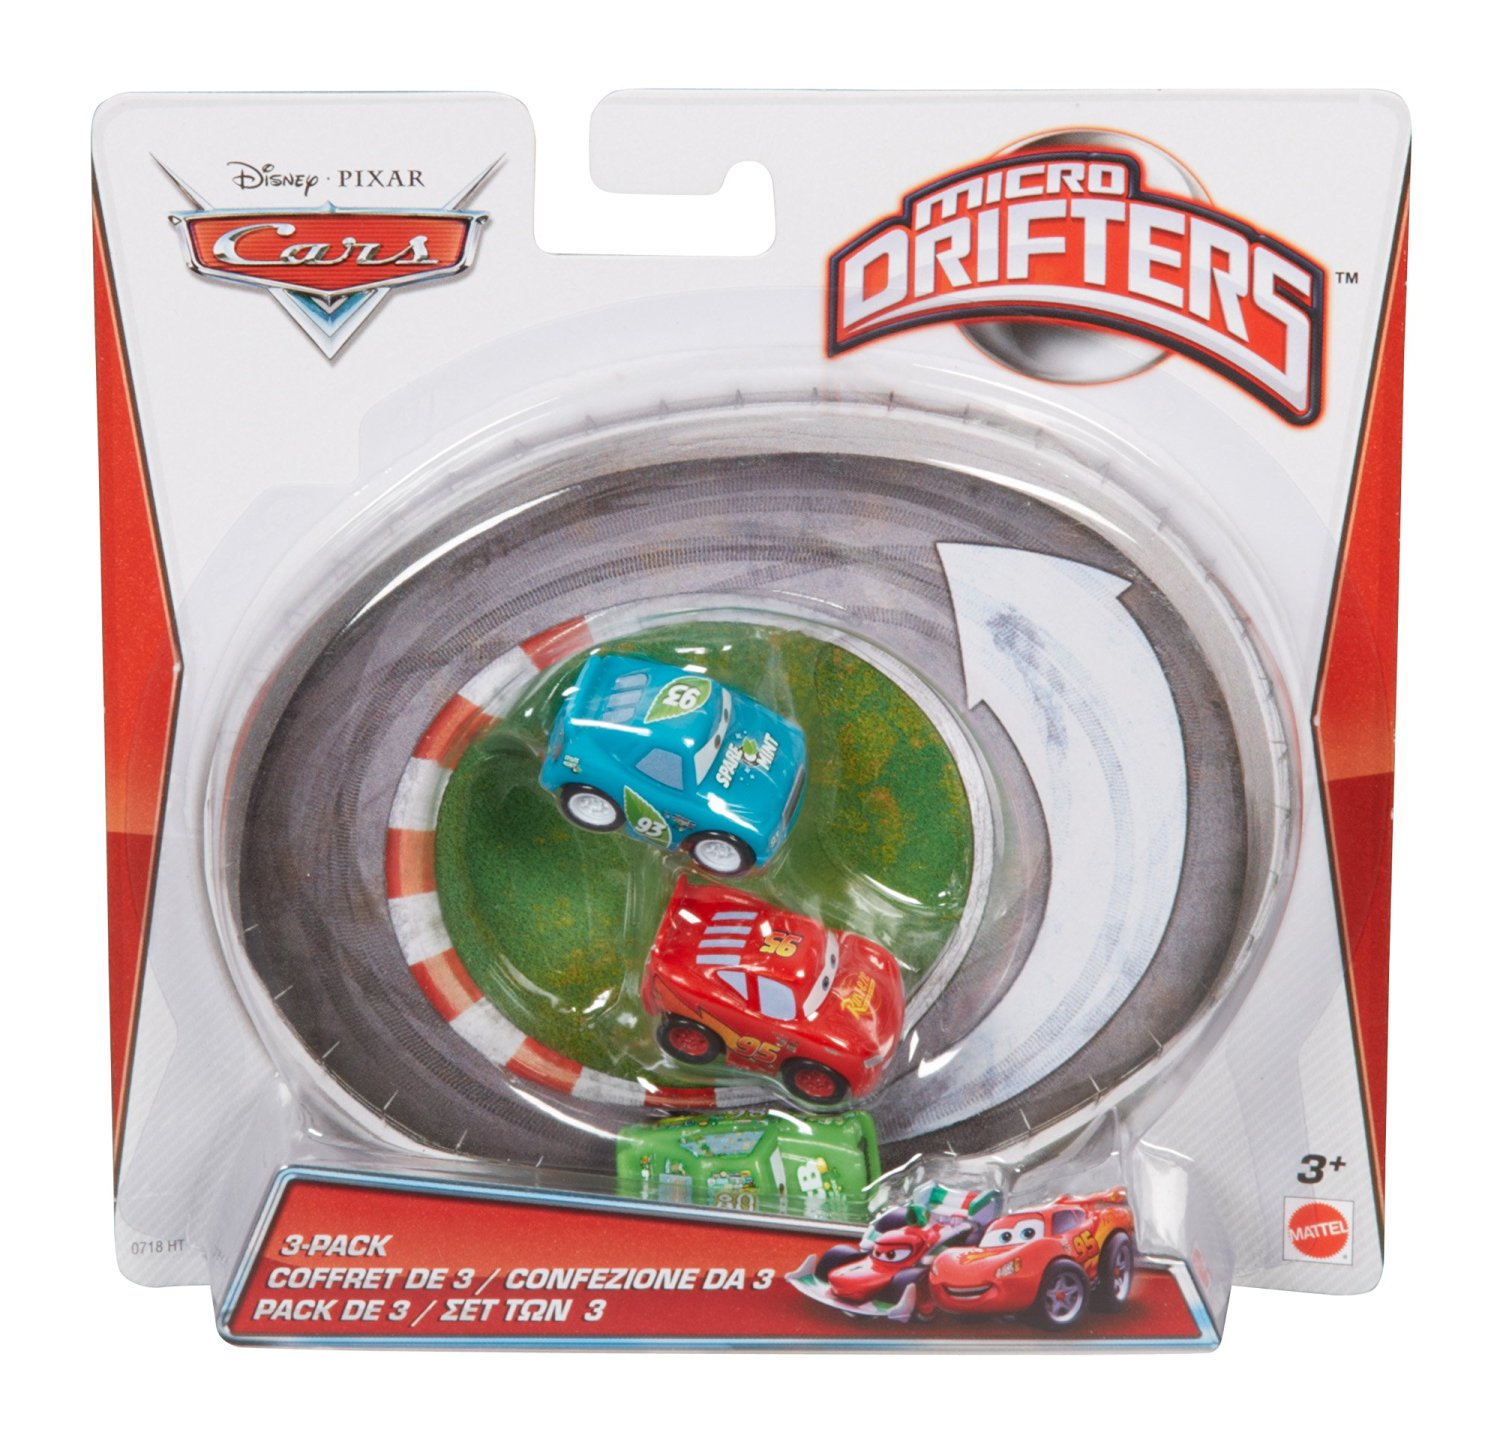 Cars Micro Drifters Chick Hicks, Spare O Mint and Lightning McQueen Vehicle, 3-Pack